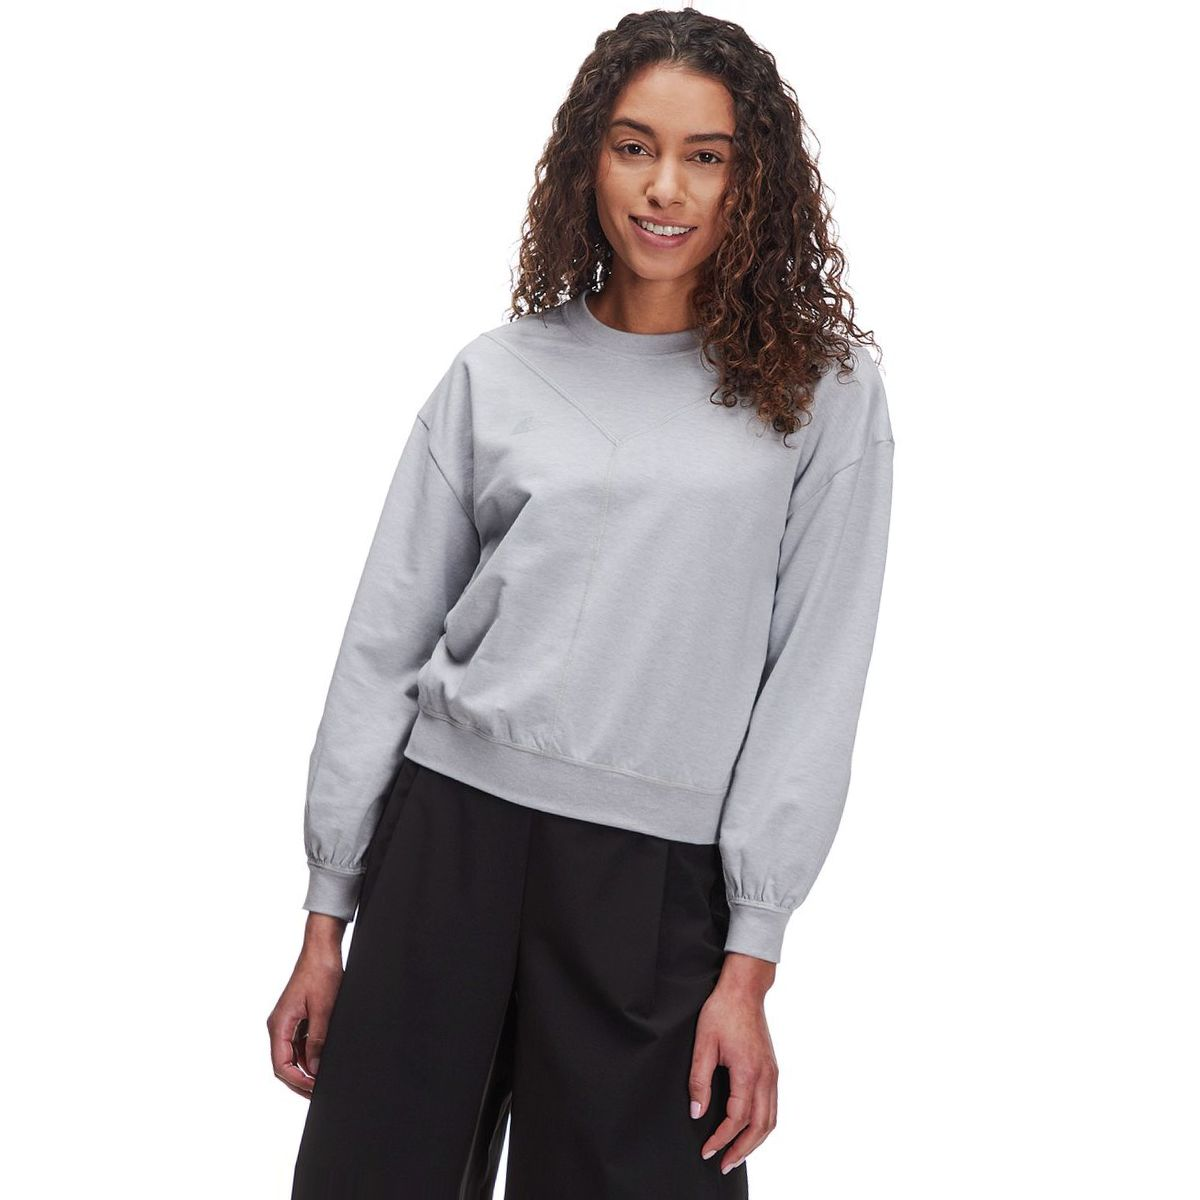 The North Face Ascential Pullover Sweatshirt - Women's